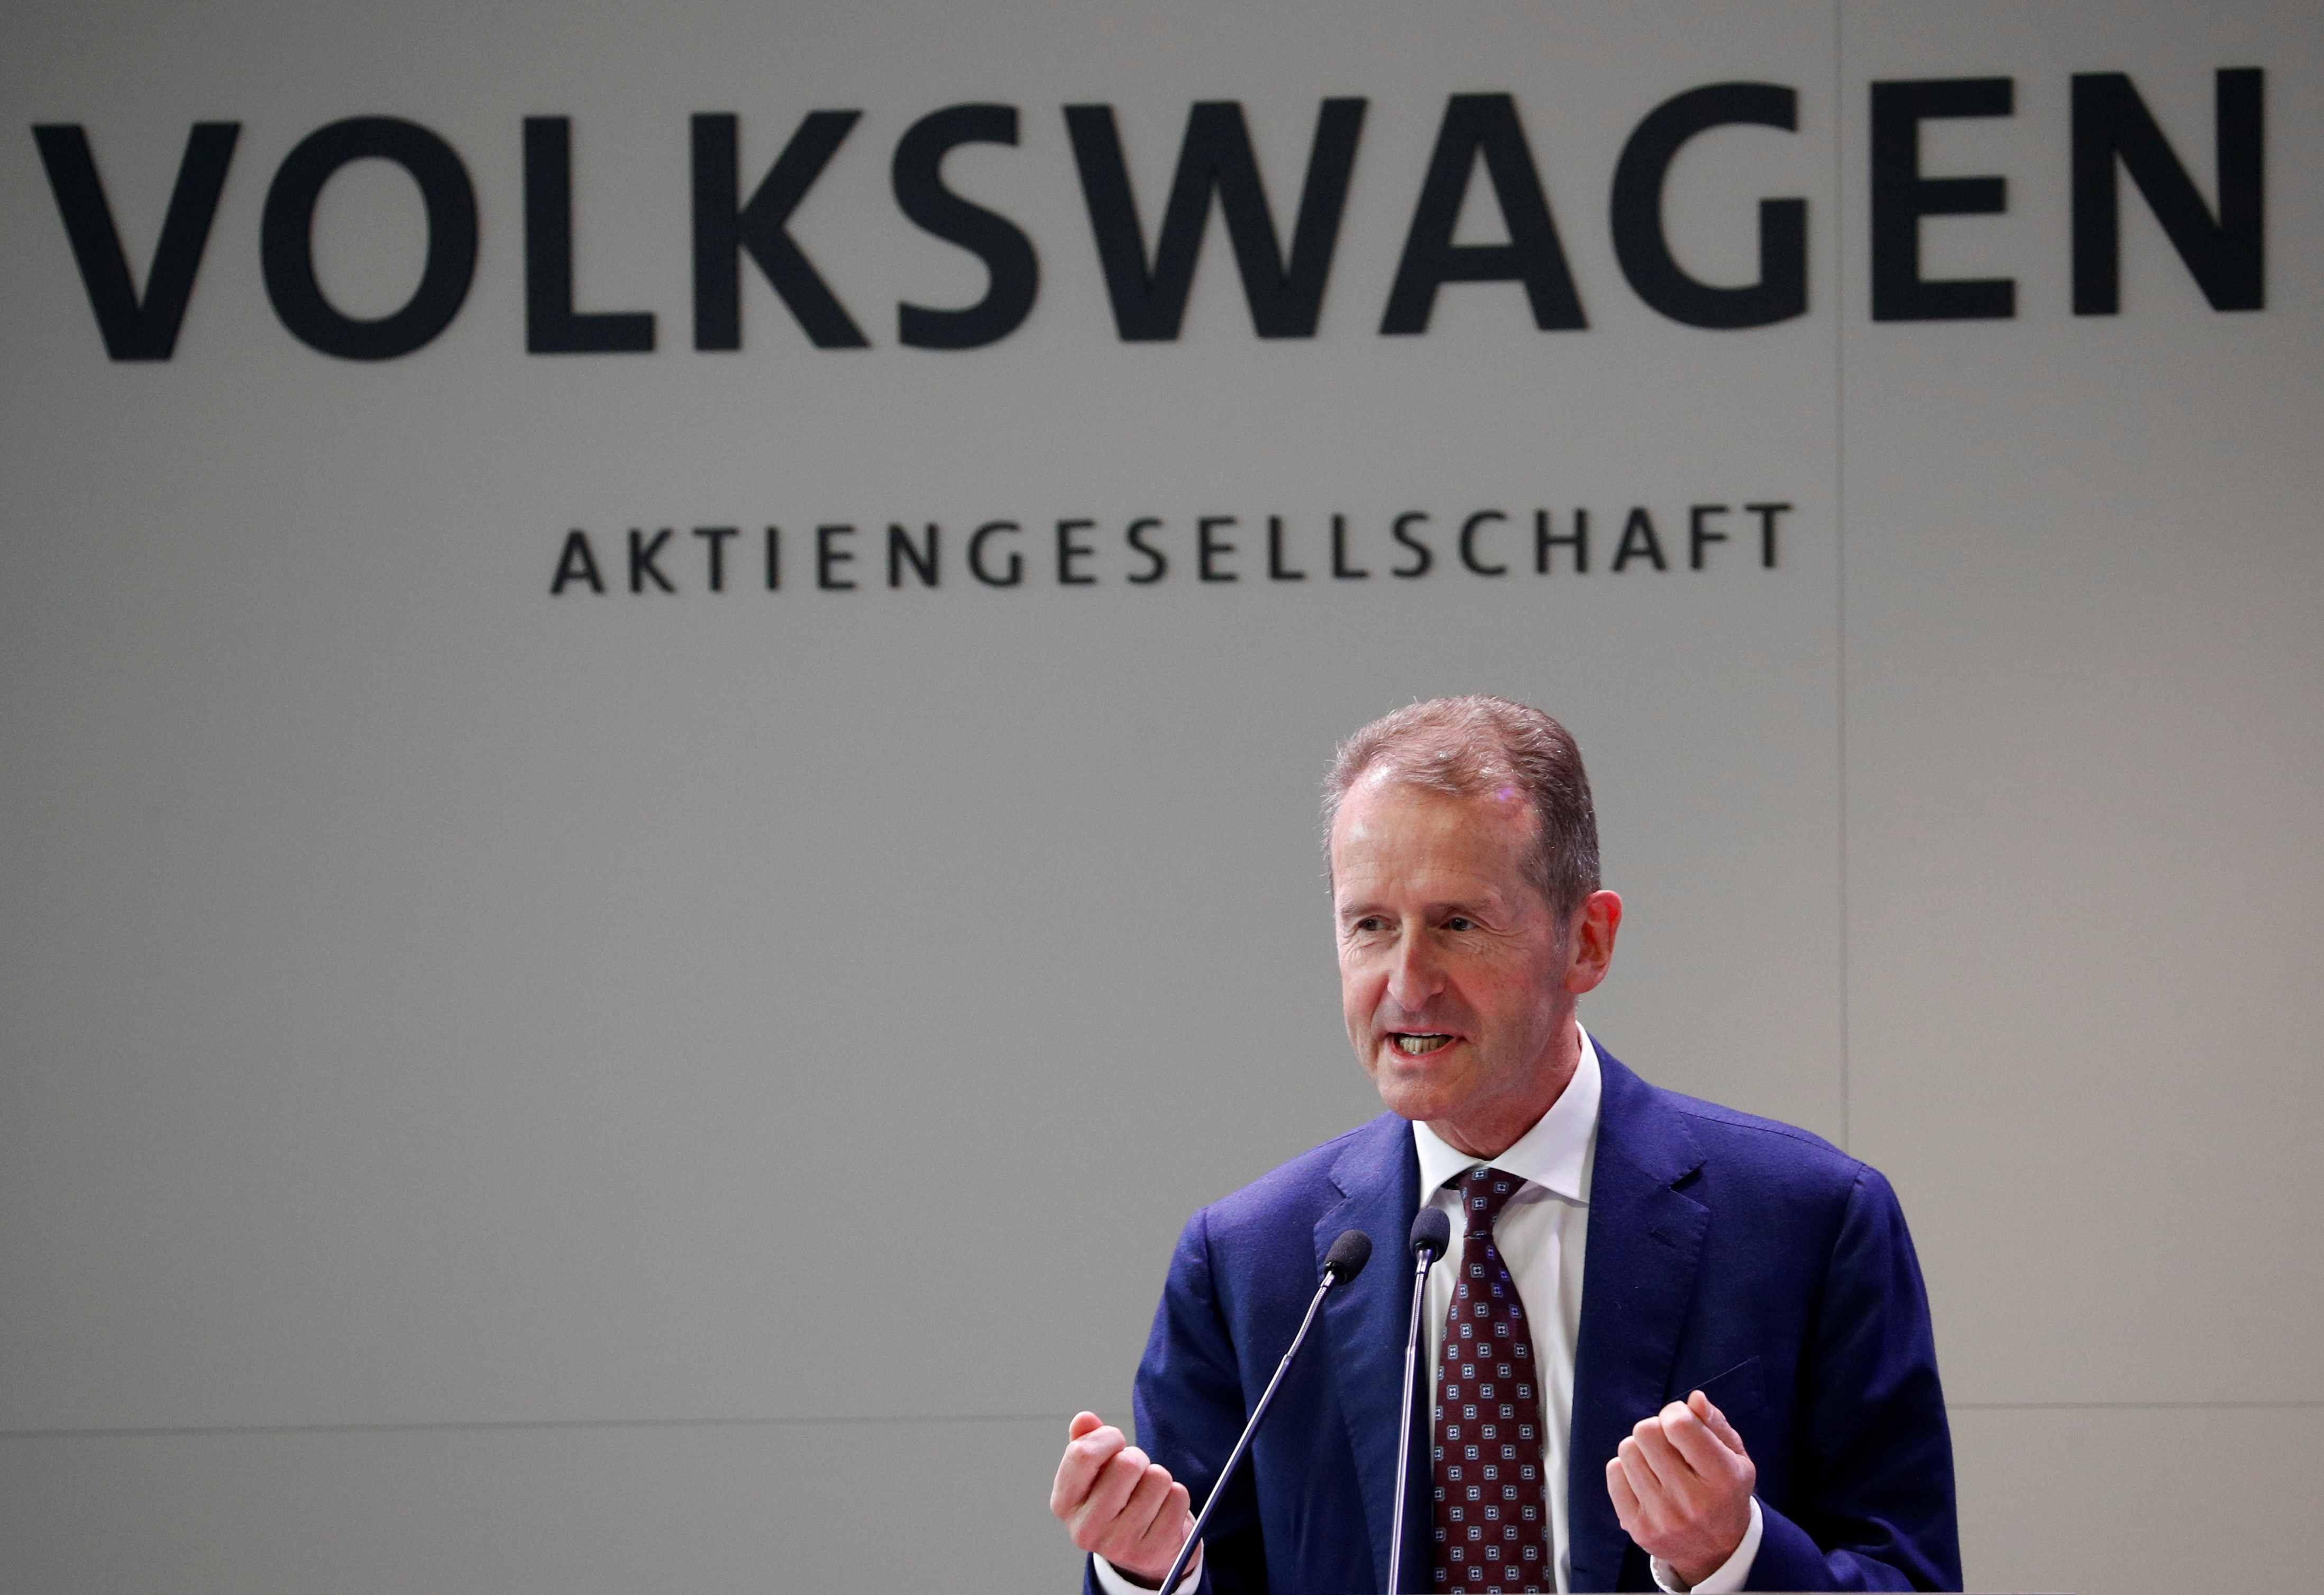 Volkswagen group CEO Herbert Diess delivers a speech during a visit to the SEAT (Volkswagen group) carmaker's factory in Martorell, near Barcelona, March 5, 2021. REUTERS/Albert Gea